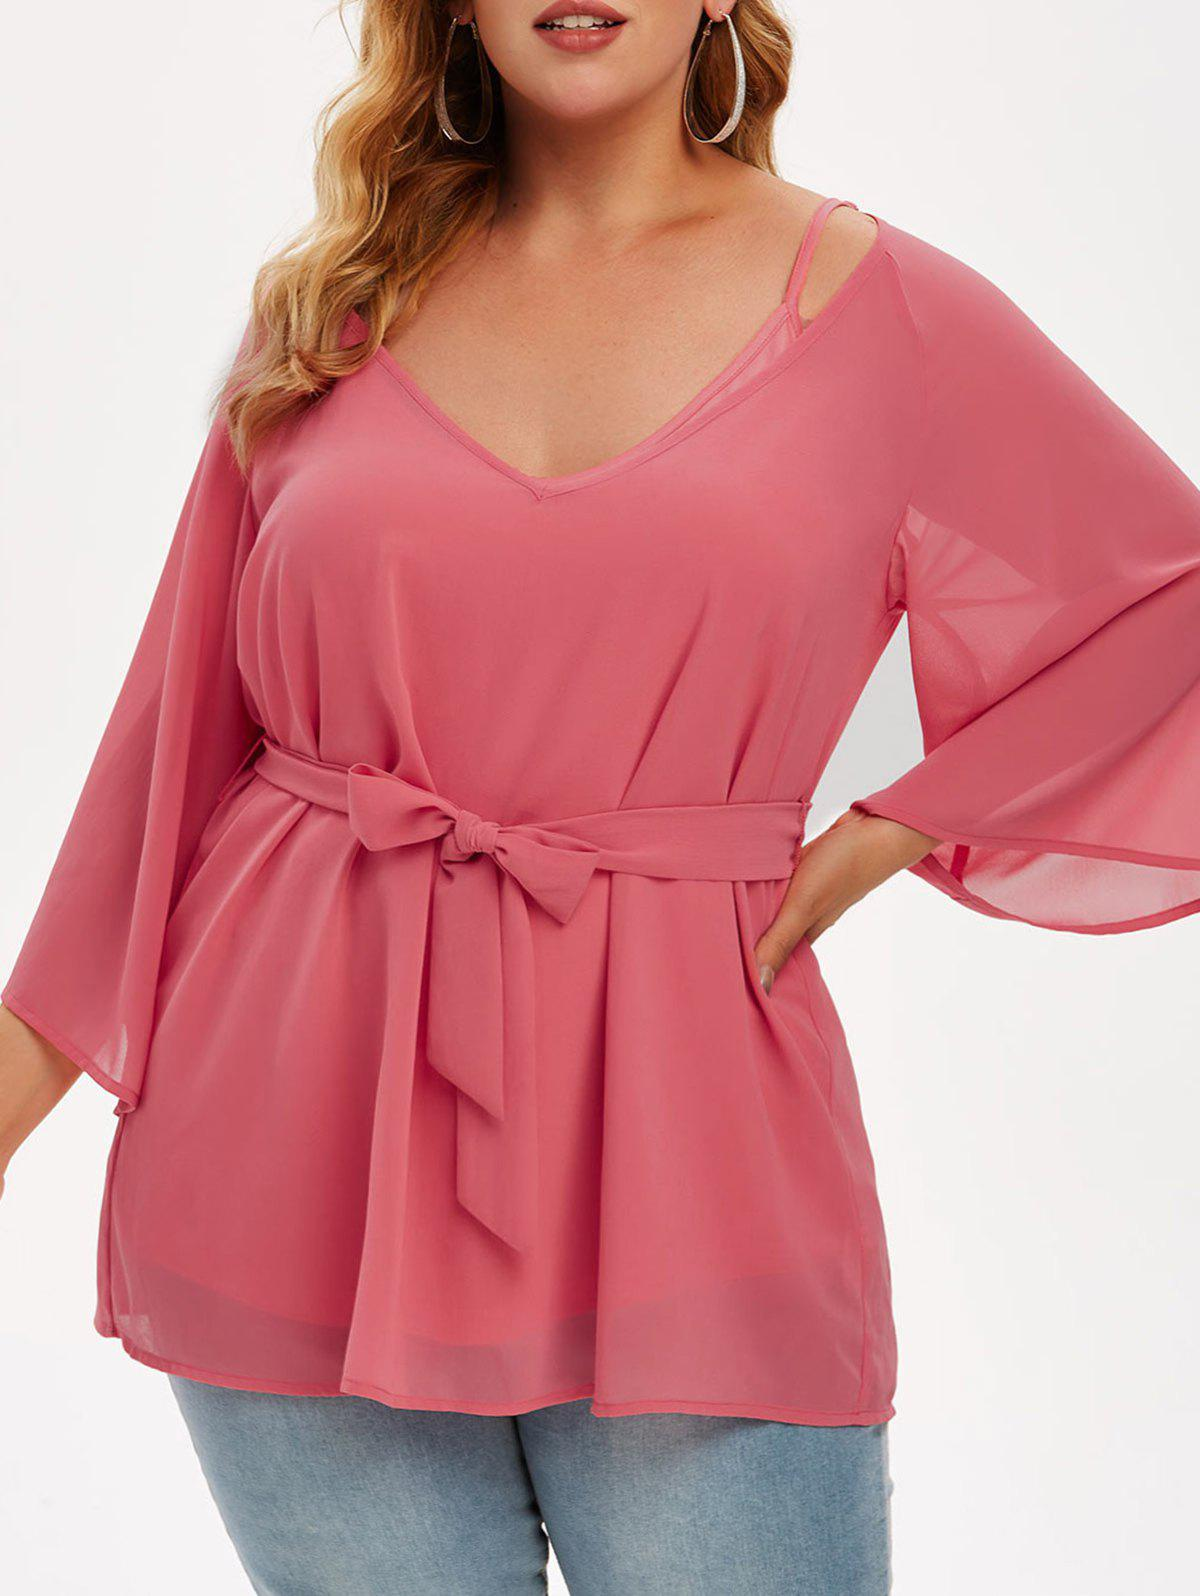 New Plus Size Cami Top And Chiffon Belted Blouse Set